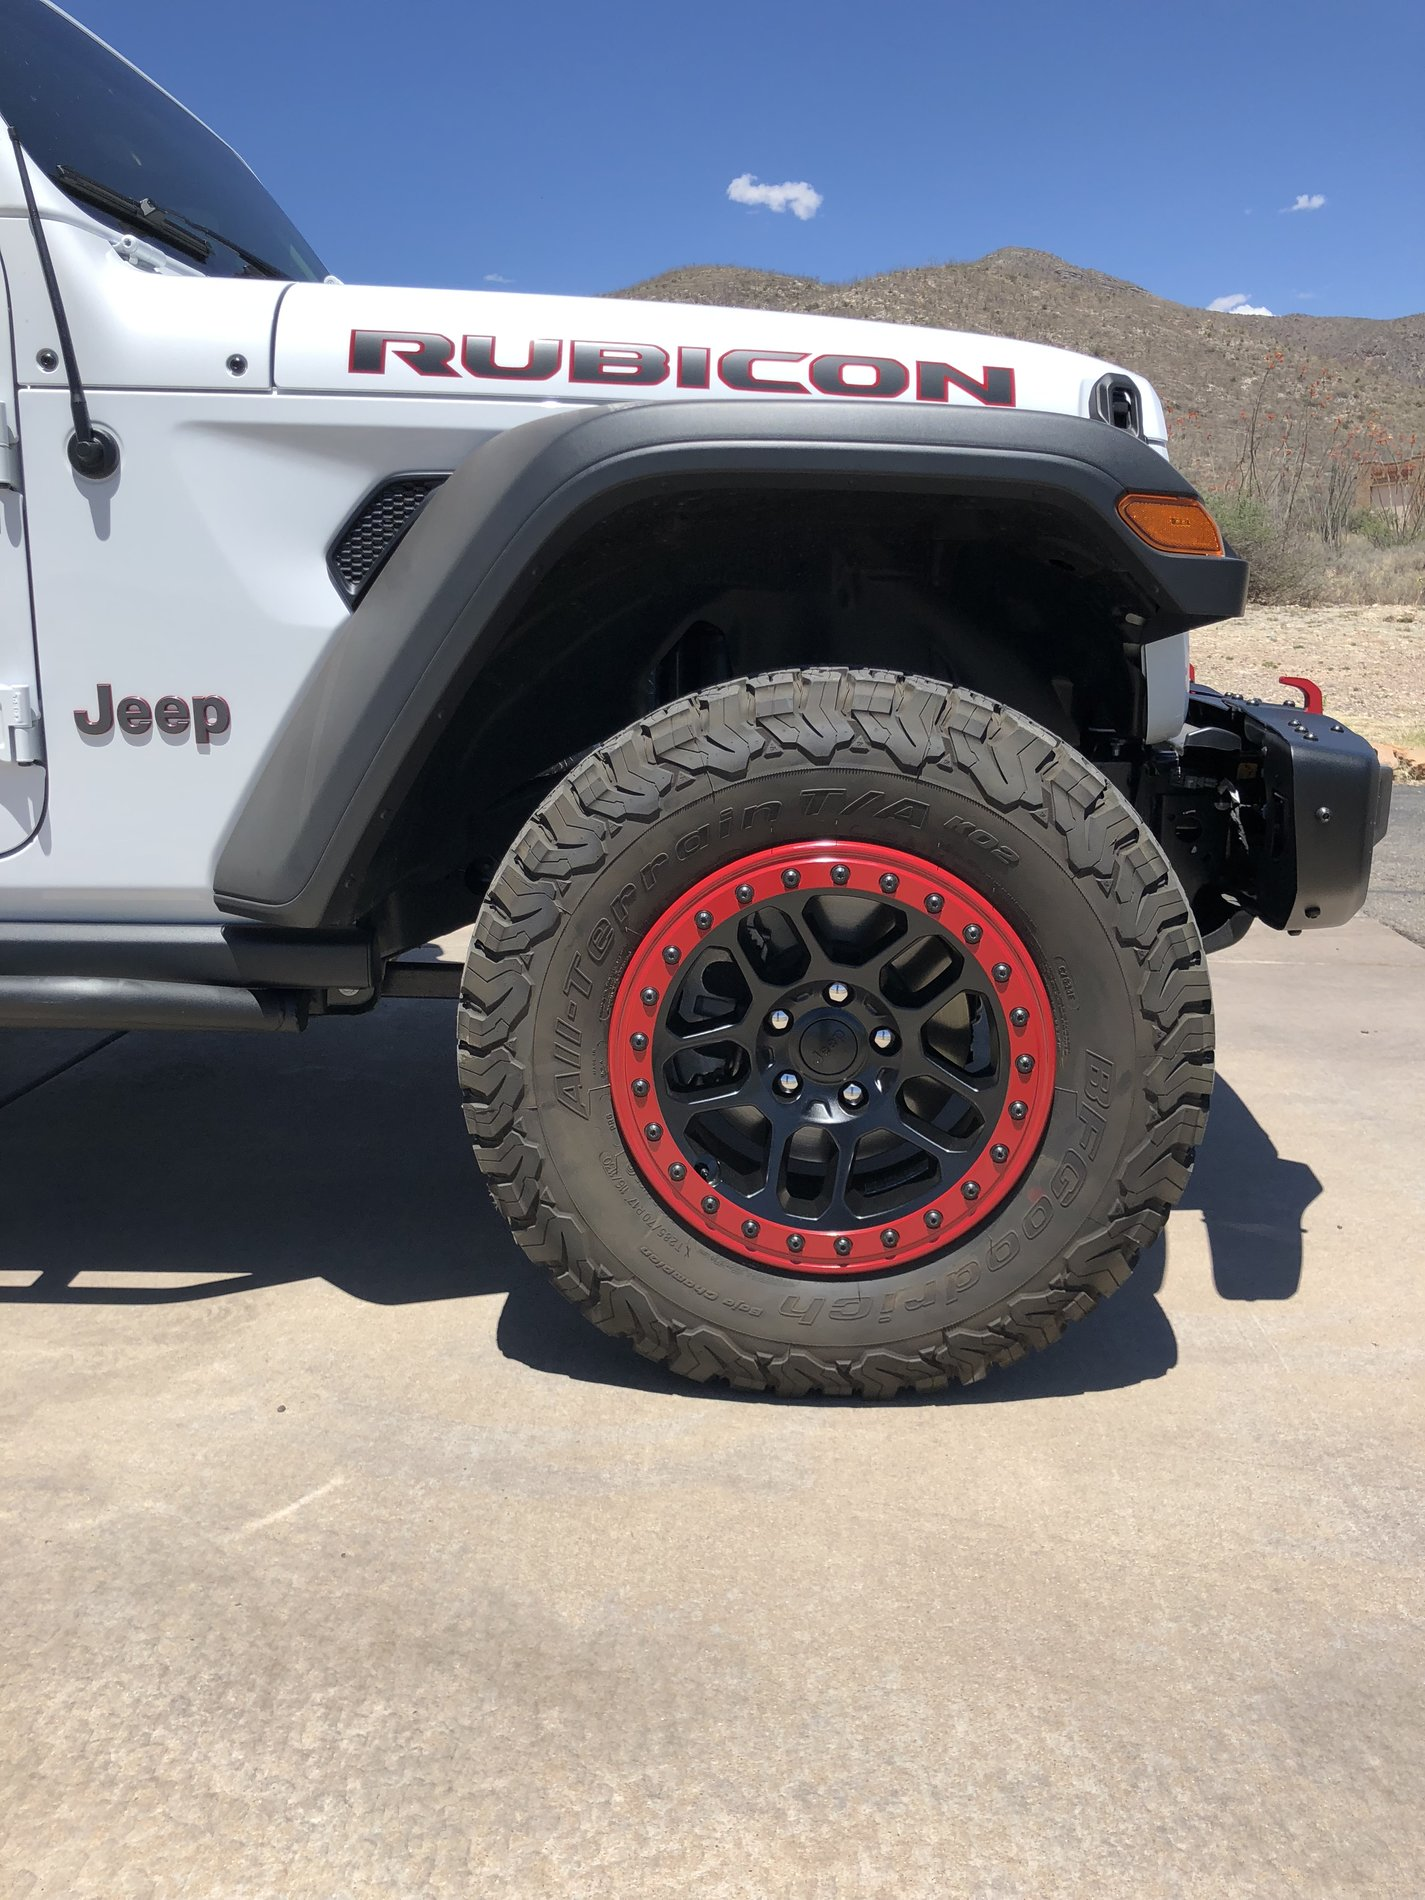 Jeep Wrangler Rims >> New Mopar Beadlocks for our JLU | 2018+ Jeep Wrangler ...